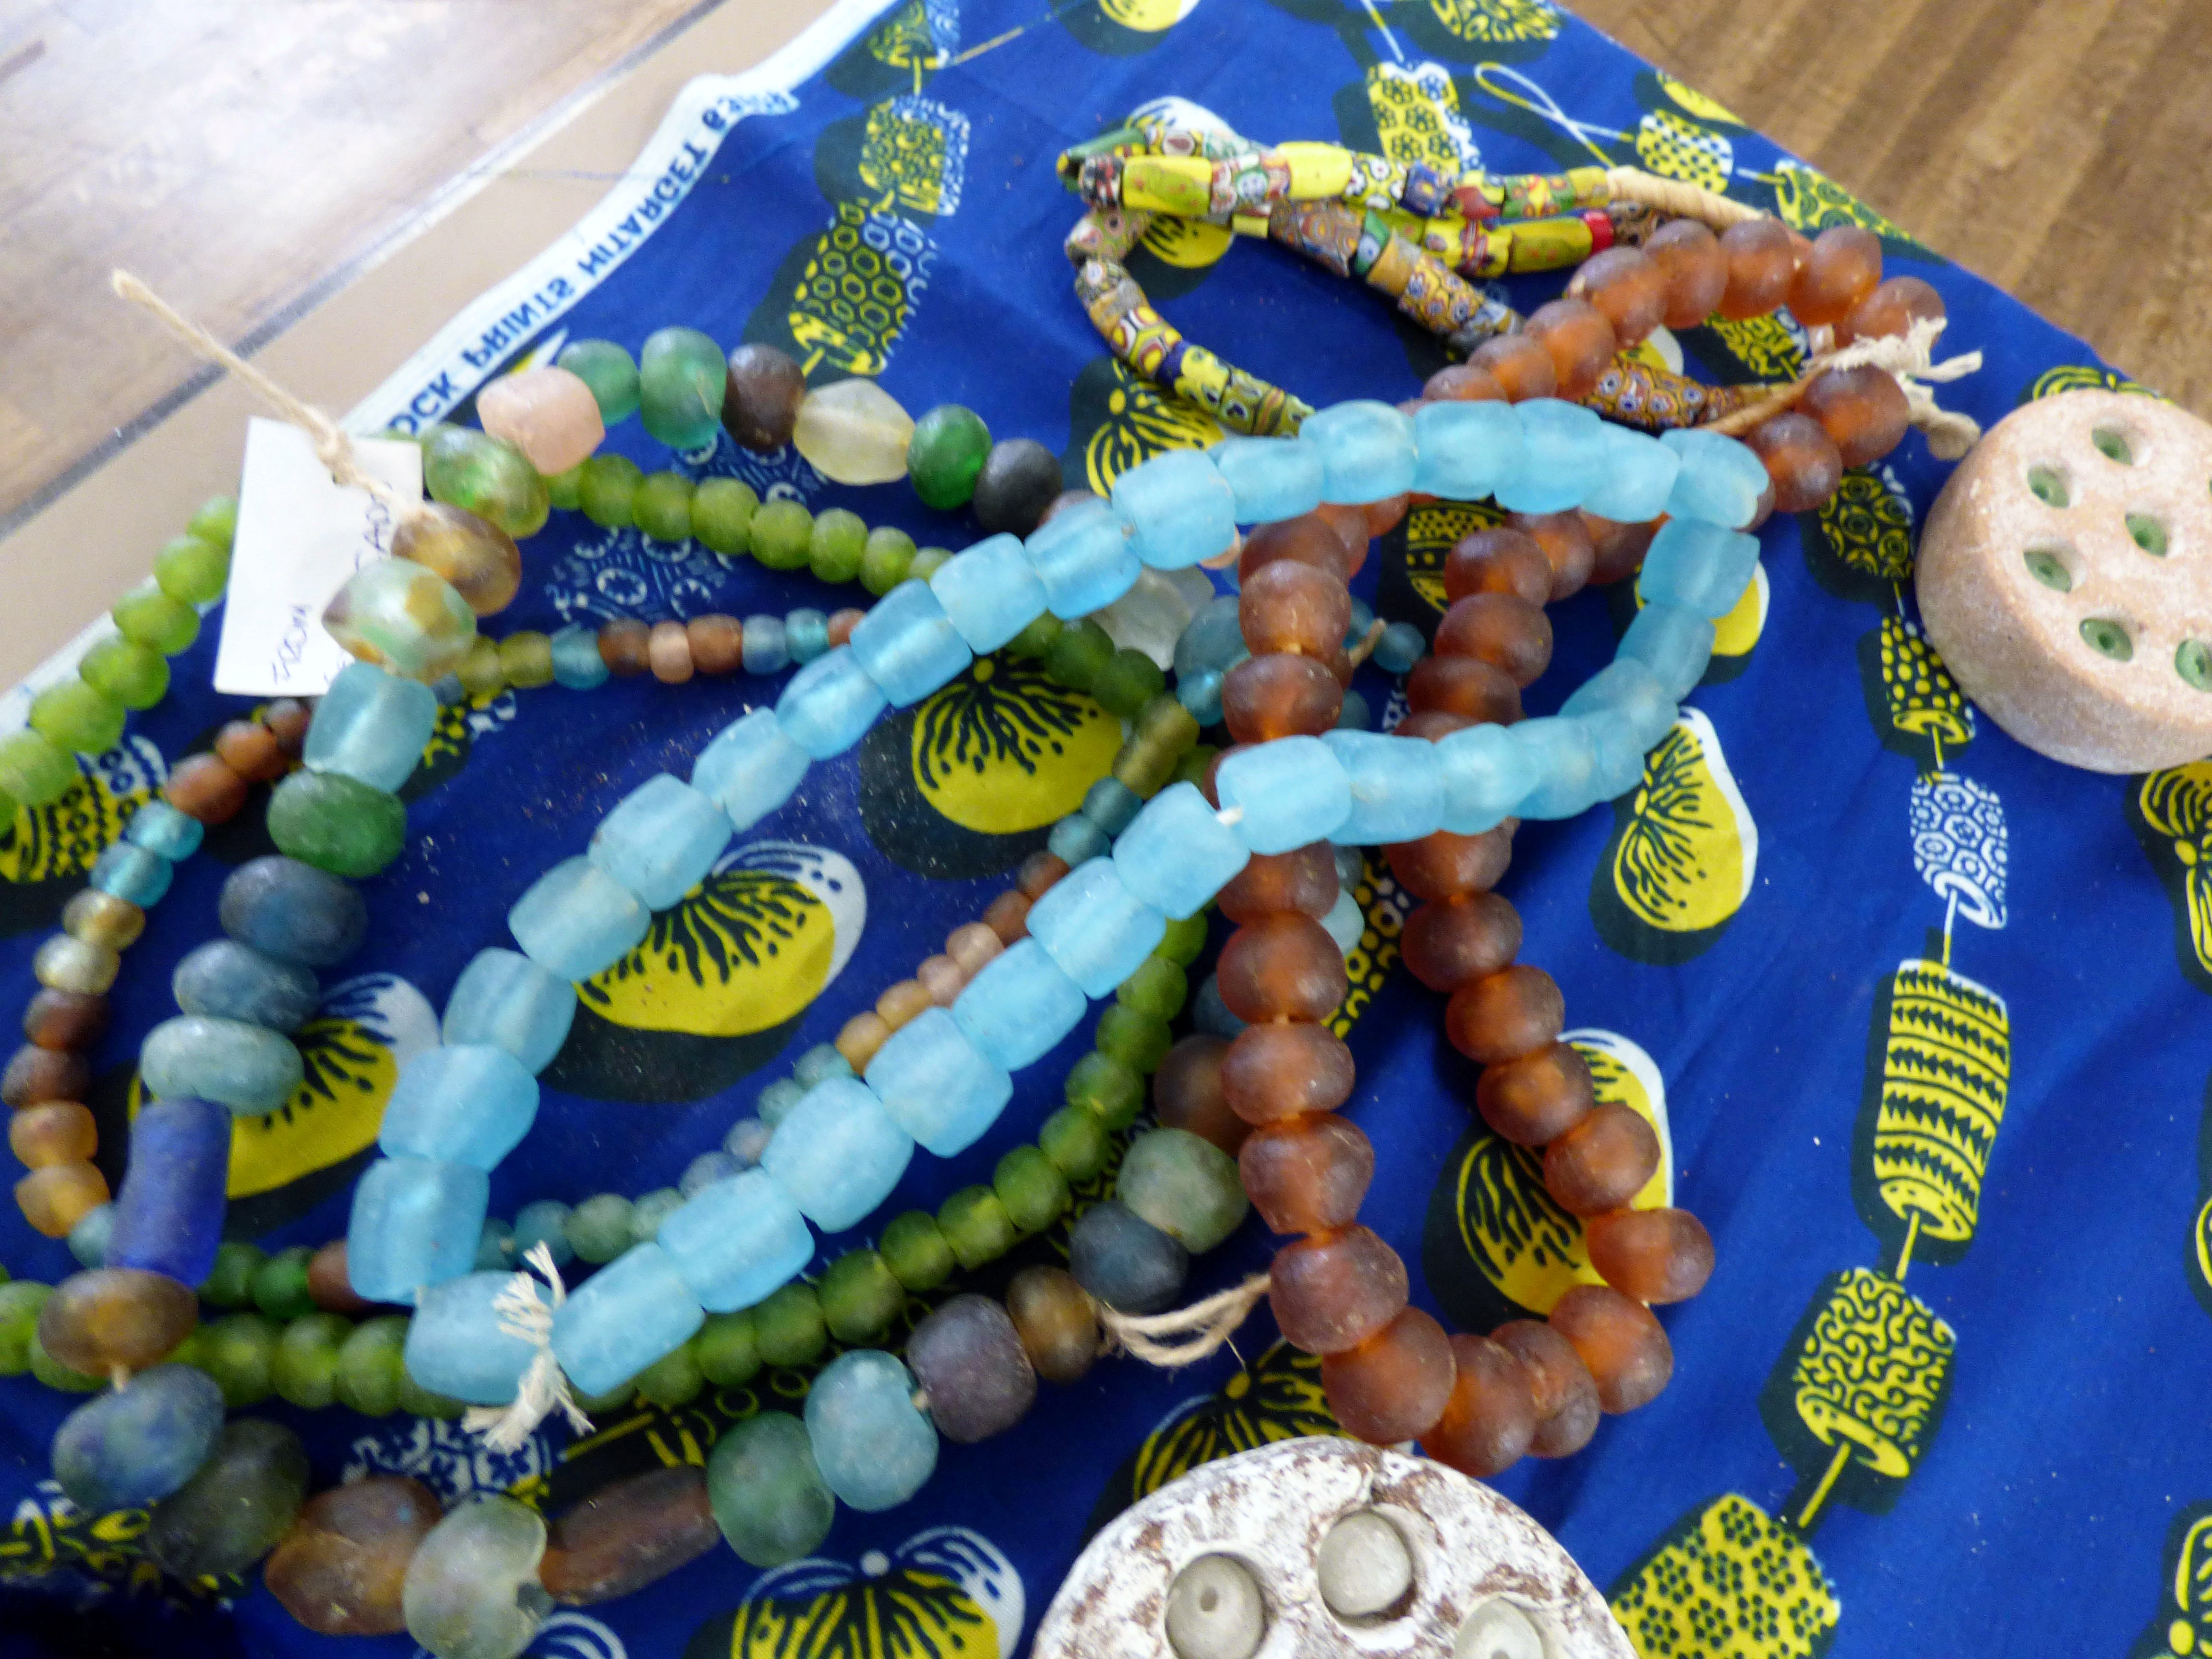 beads made from glass bottles, Beauty and the Bead Talk 2019